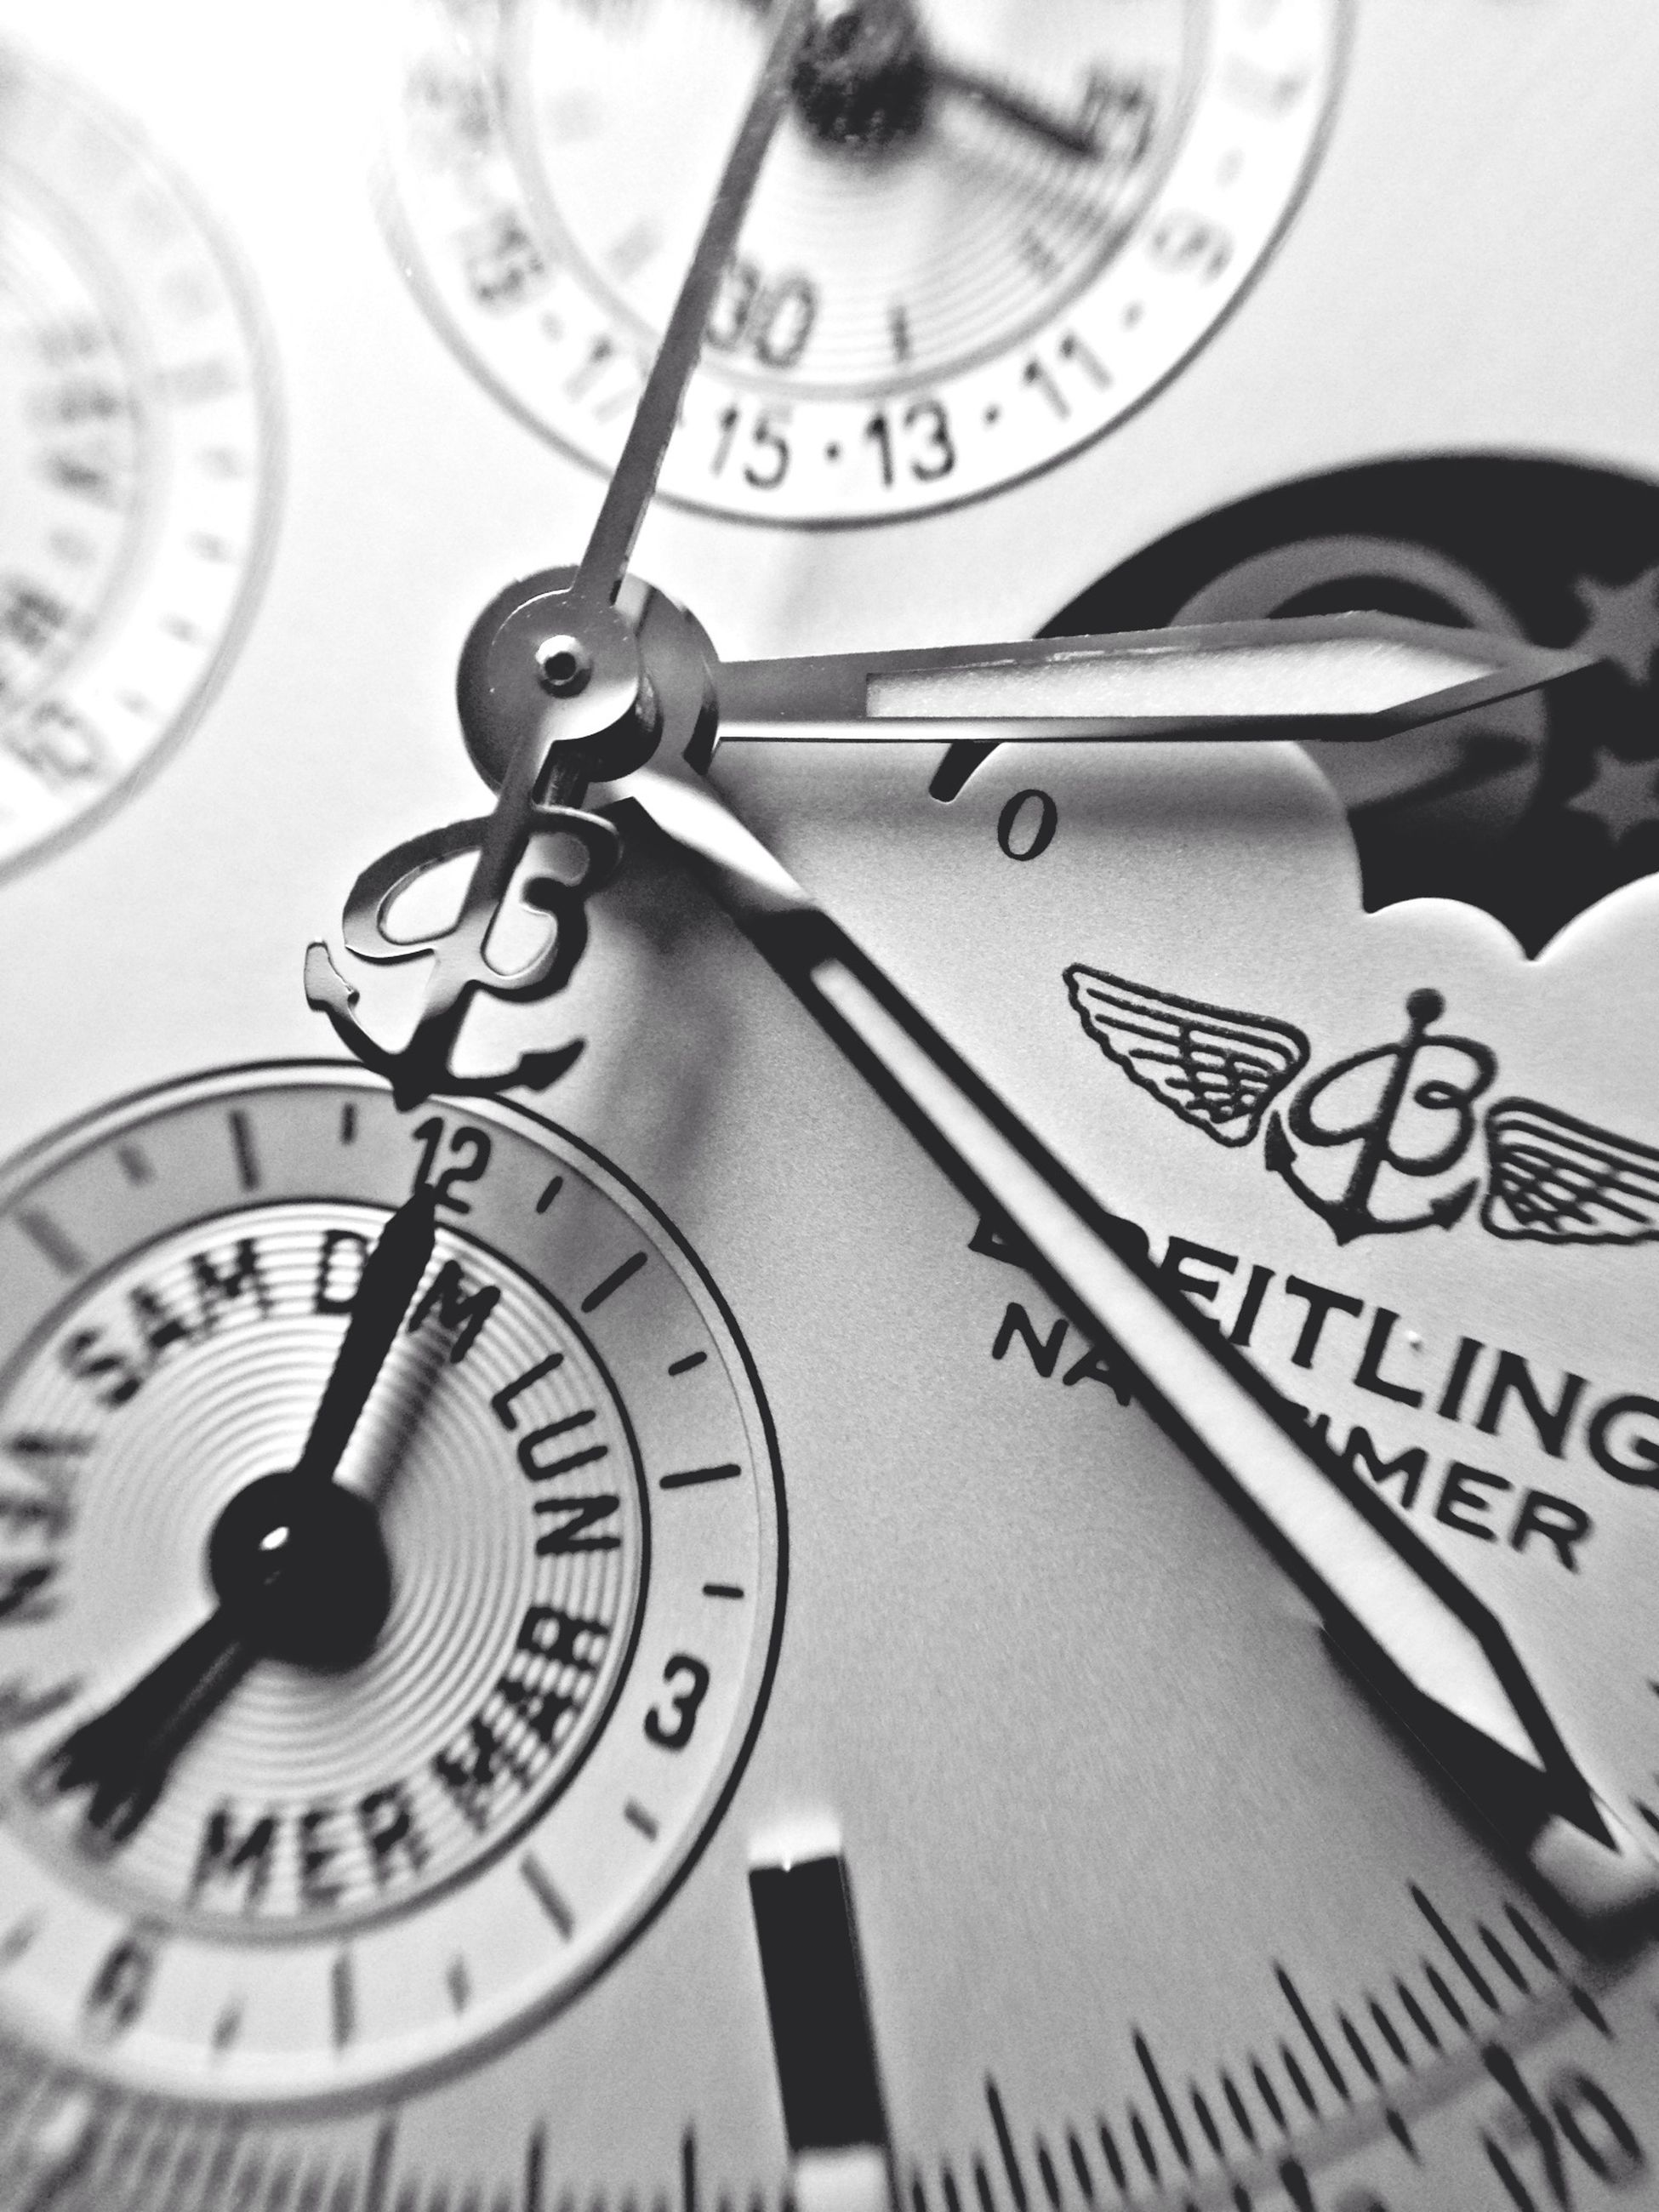 time, clock, indoors, number, communication, close-up, text, accuracy, clock face, instrument of time, technology, old-fashioned, western script, selective focus, minute hand, wall clock, retro styled, focus on foreground, instrument of measurement, part of